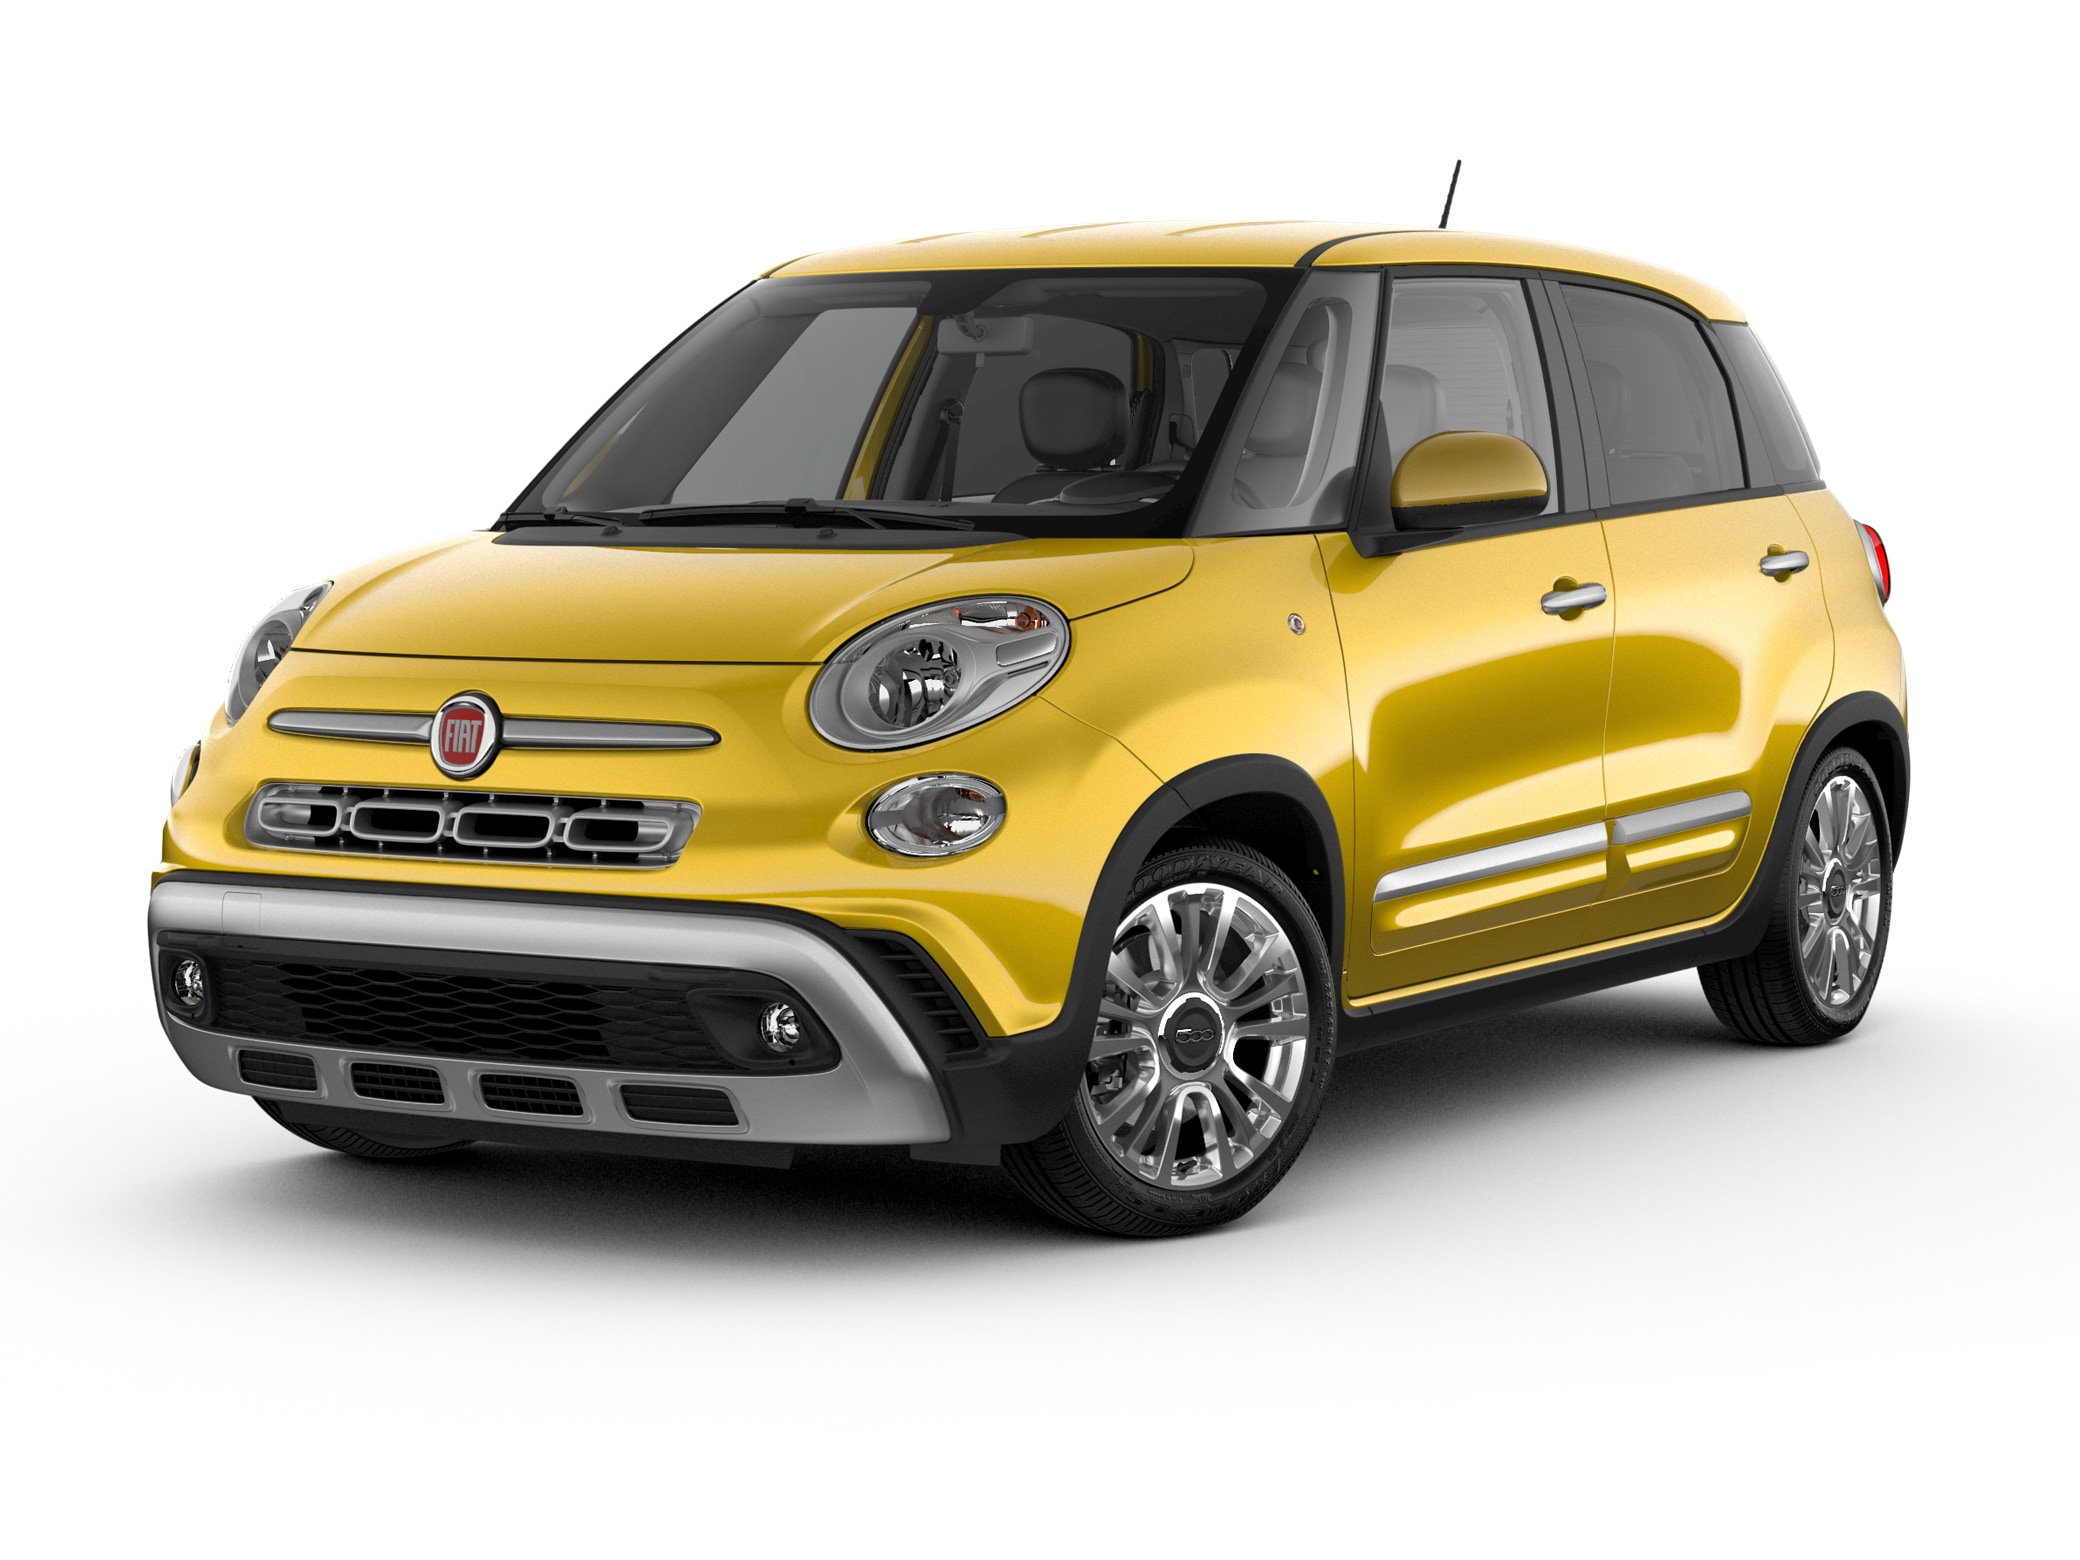 2019 fiat 500l for sale in manhattan ks | briggs auto group